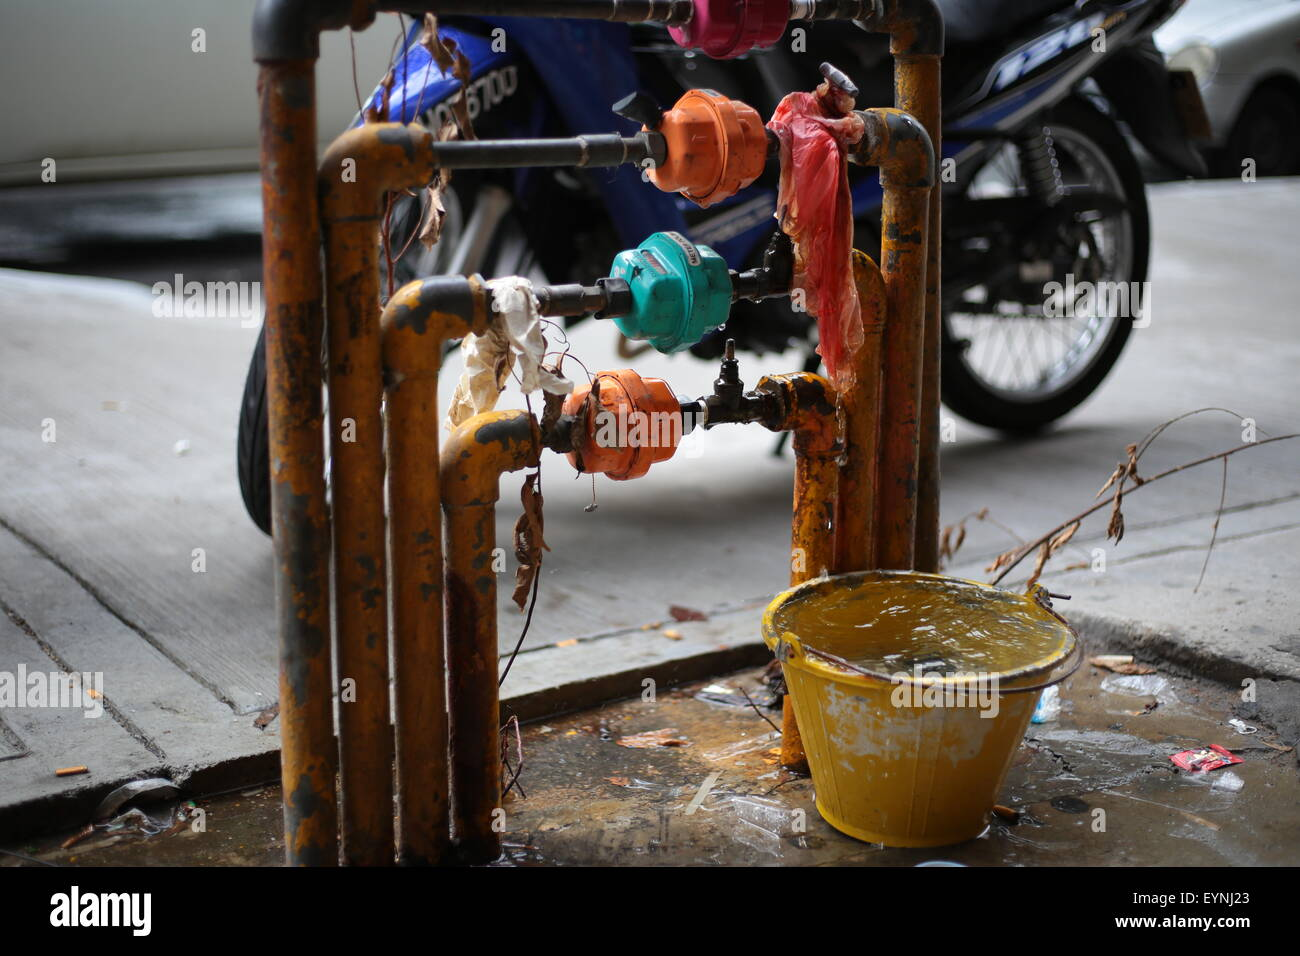 Water leakage from a pipe. - Stock Image